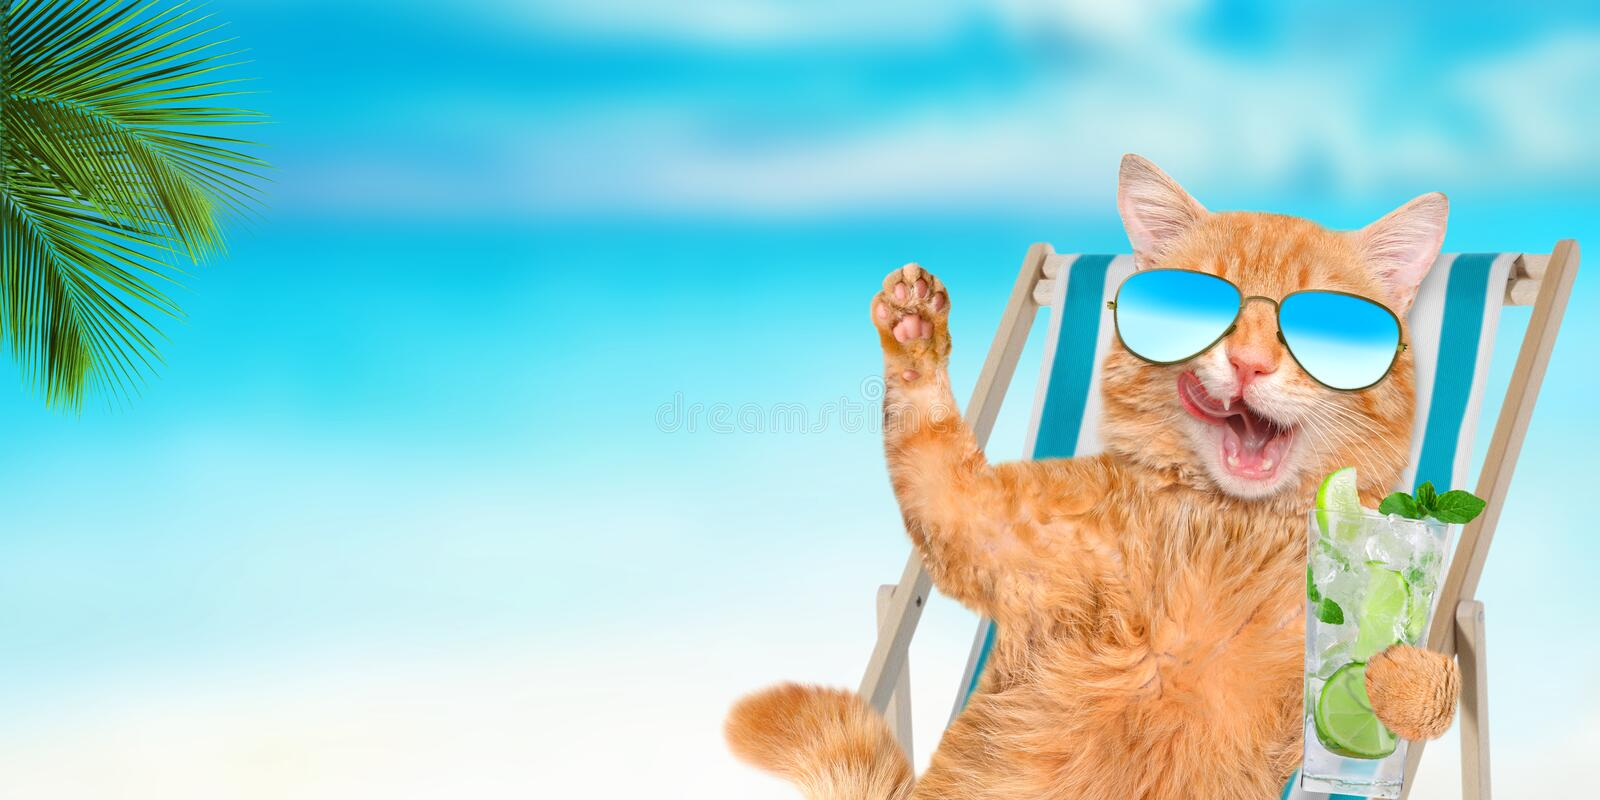 Cat wearing sunglasses relaxing sitting on deckchair. Cat wearing sunglasses relaxing sitting on deckchair in the sea background stock image